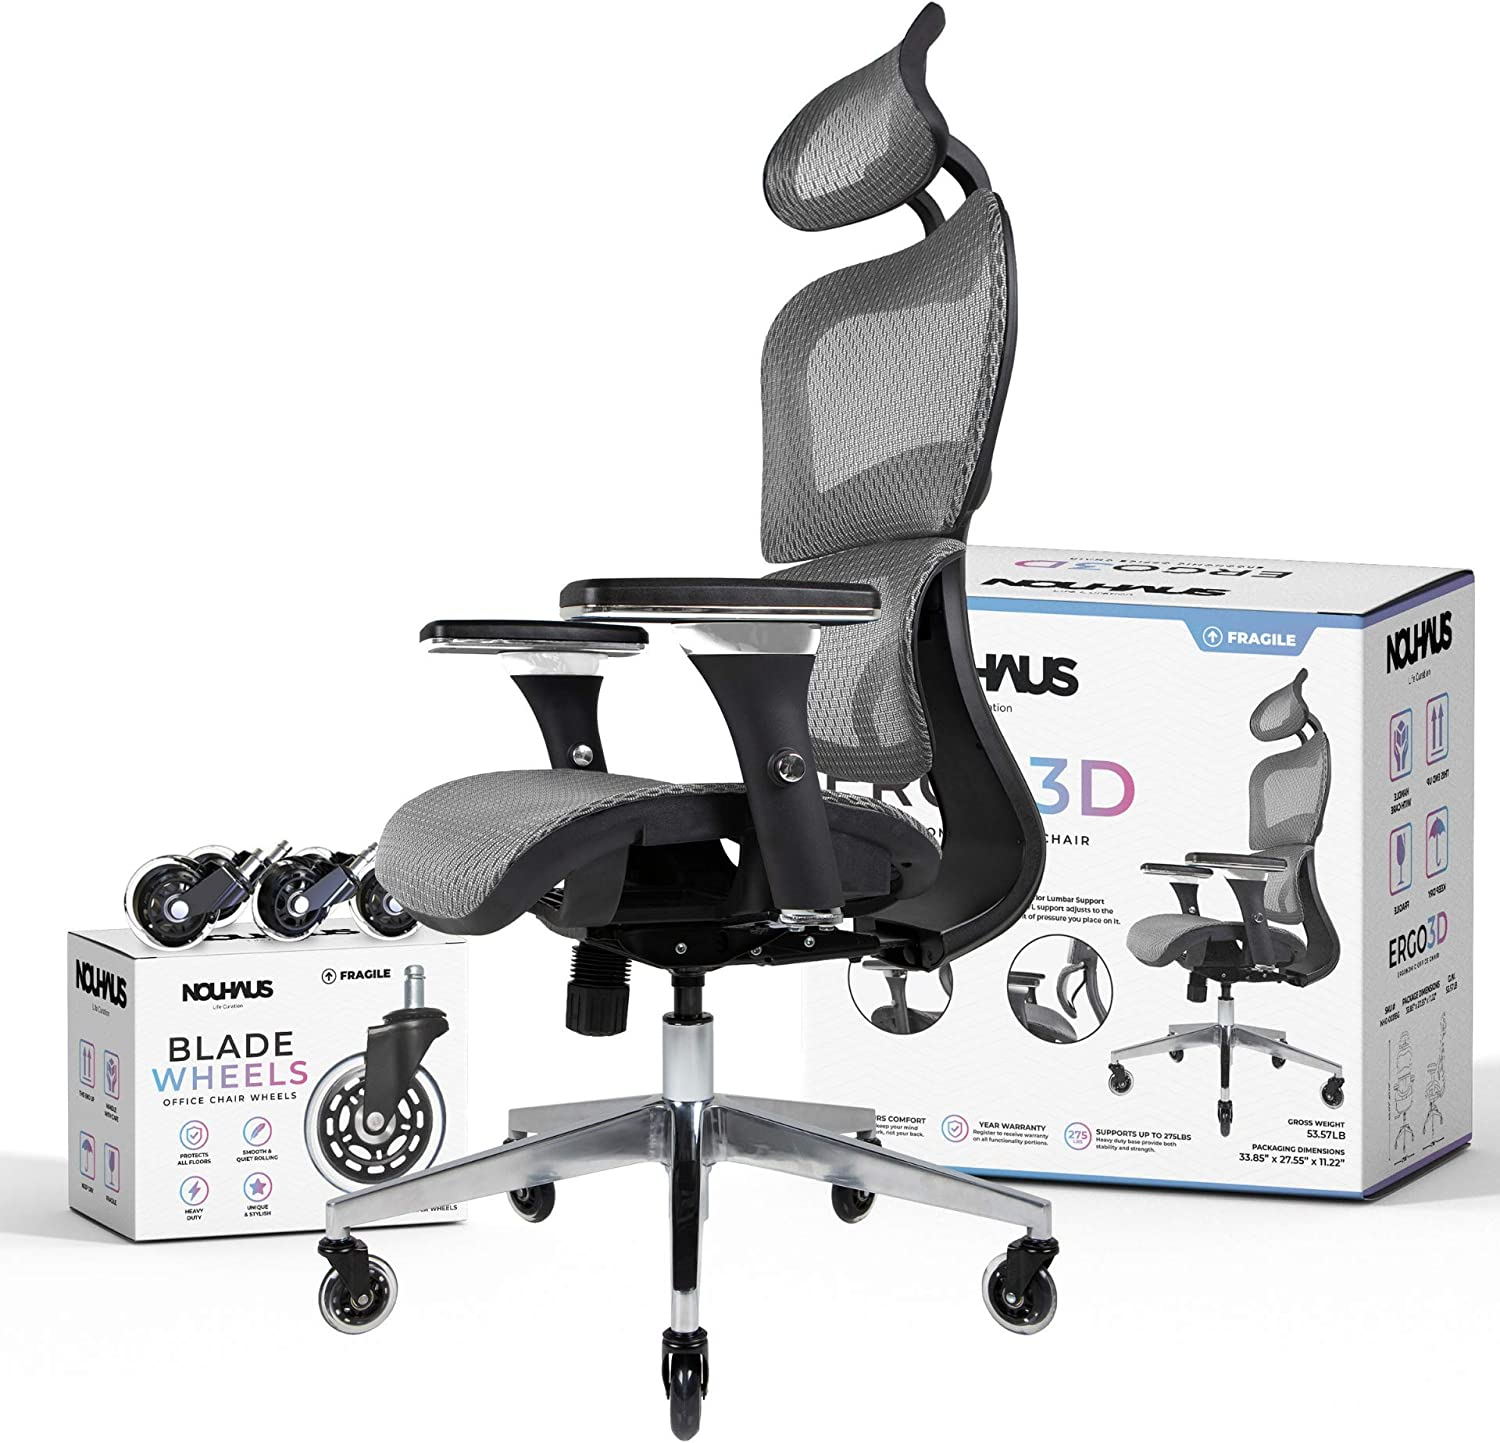 81XQt5alGcL. AC SL1500 - What Are The Best Chairs For Back Pain At Home - ChairPicks